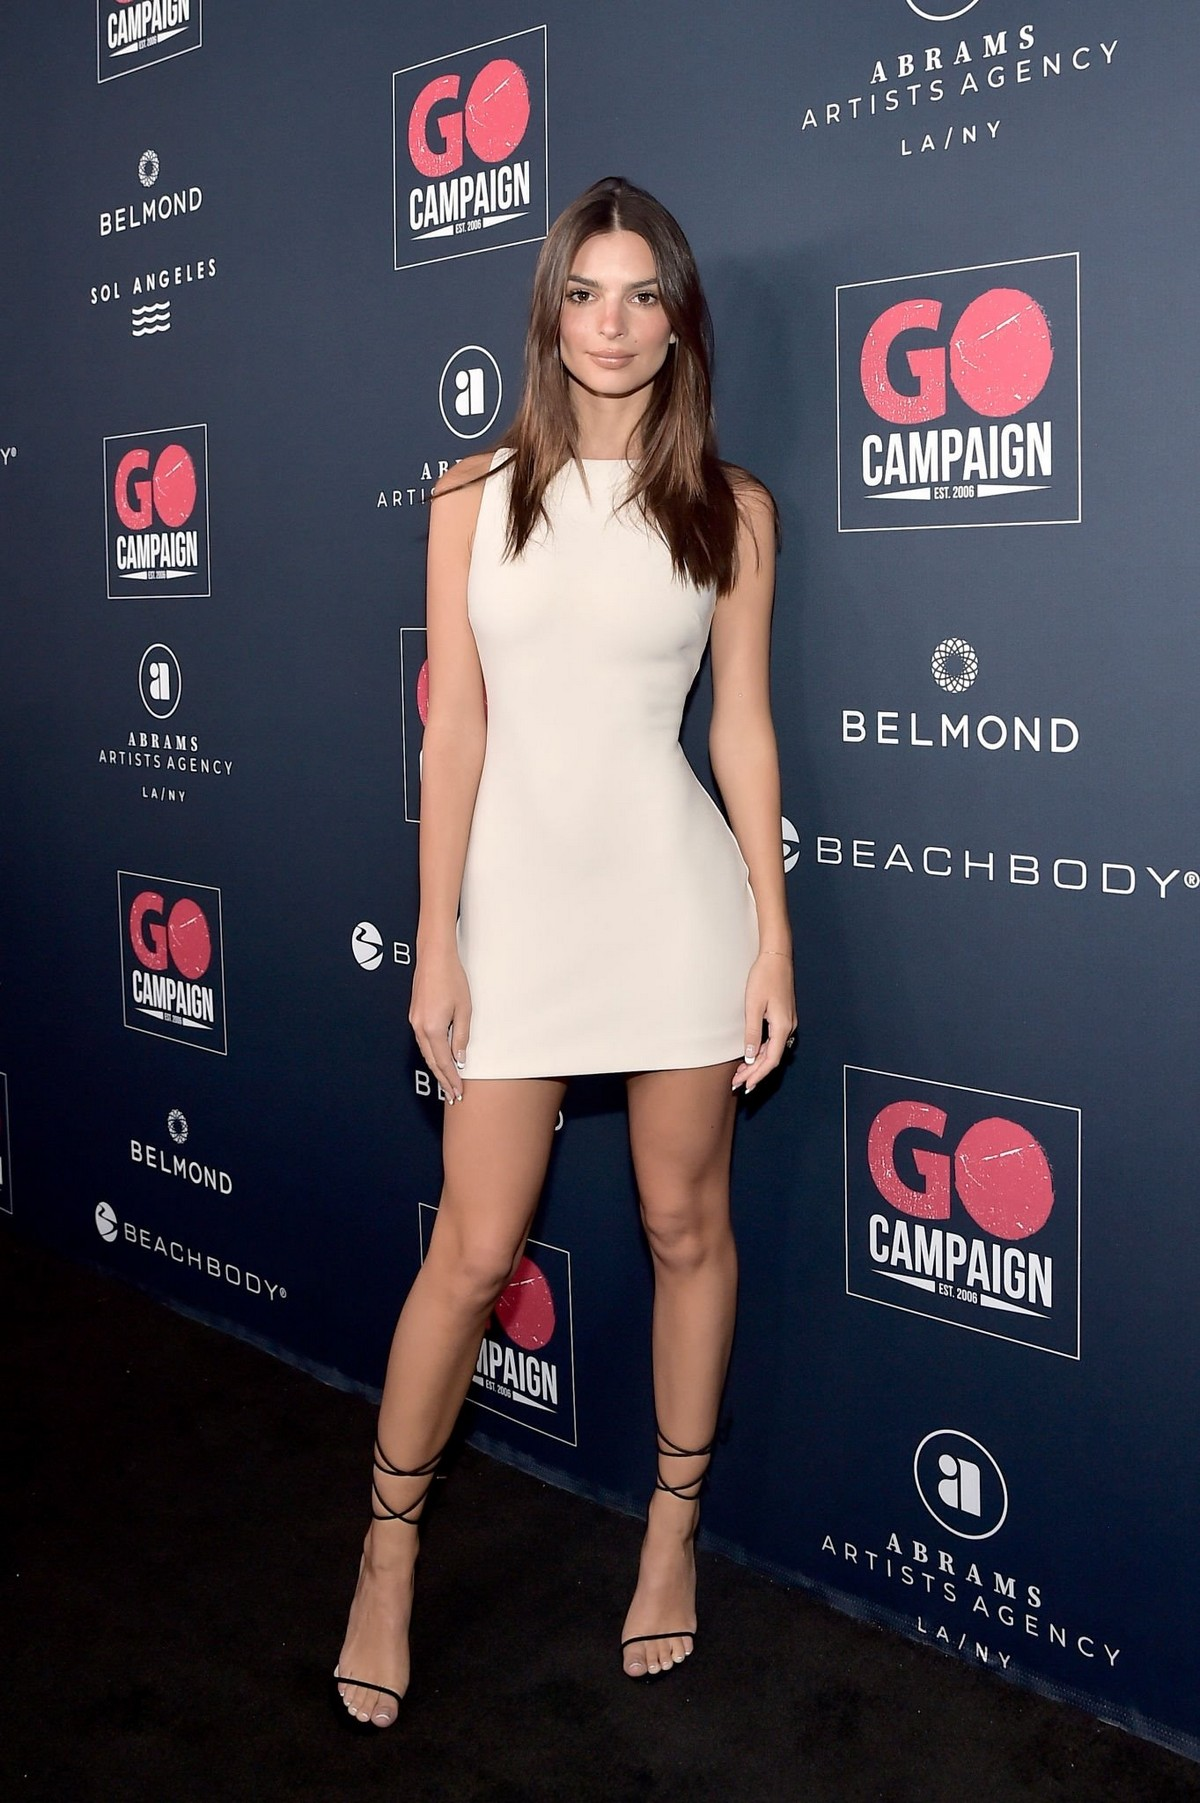 Emily Ratajkowski attends GO Campaign's 13th Annual Gala at NeueHouse in Hollywood 2019/11/16 11